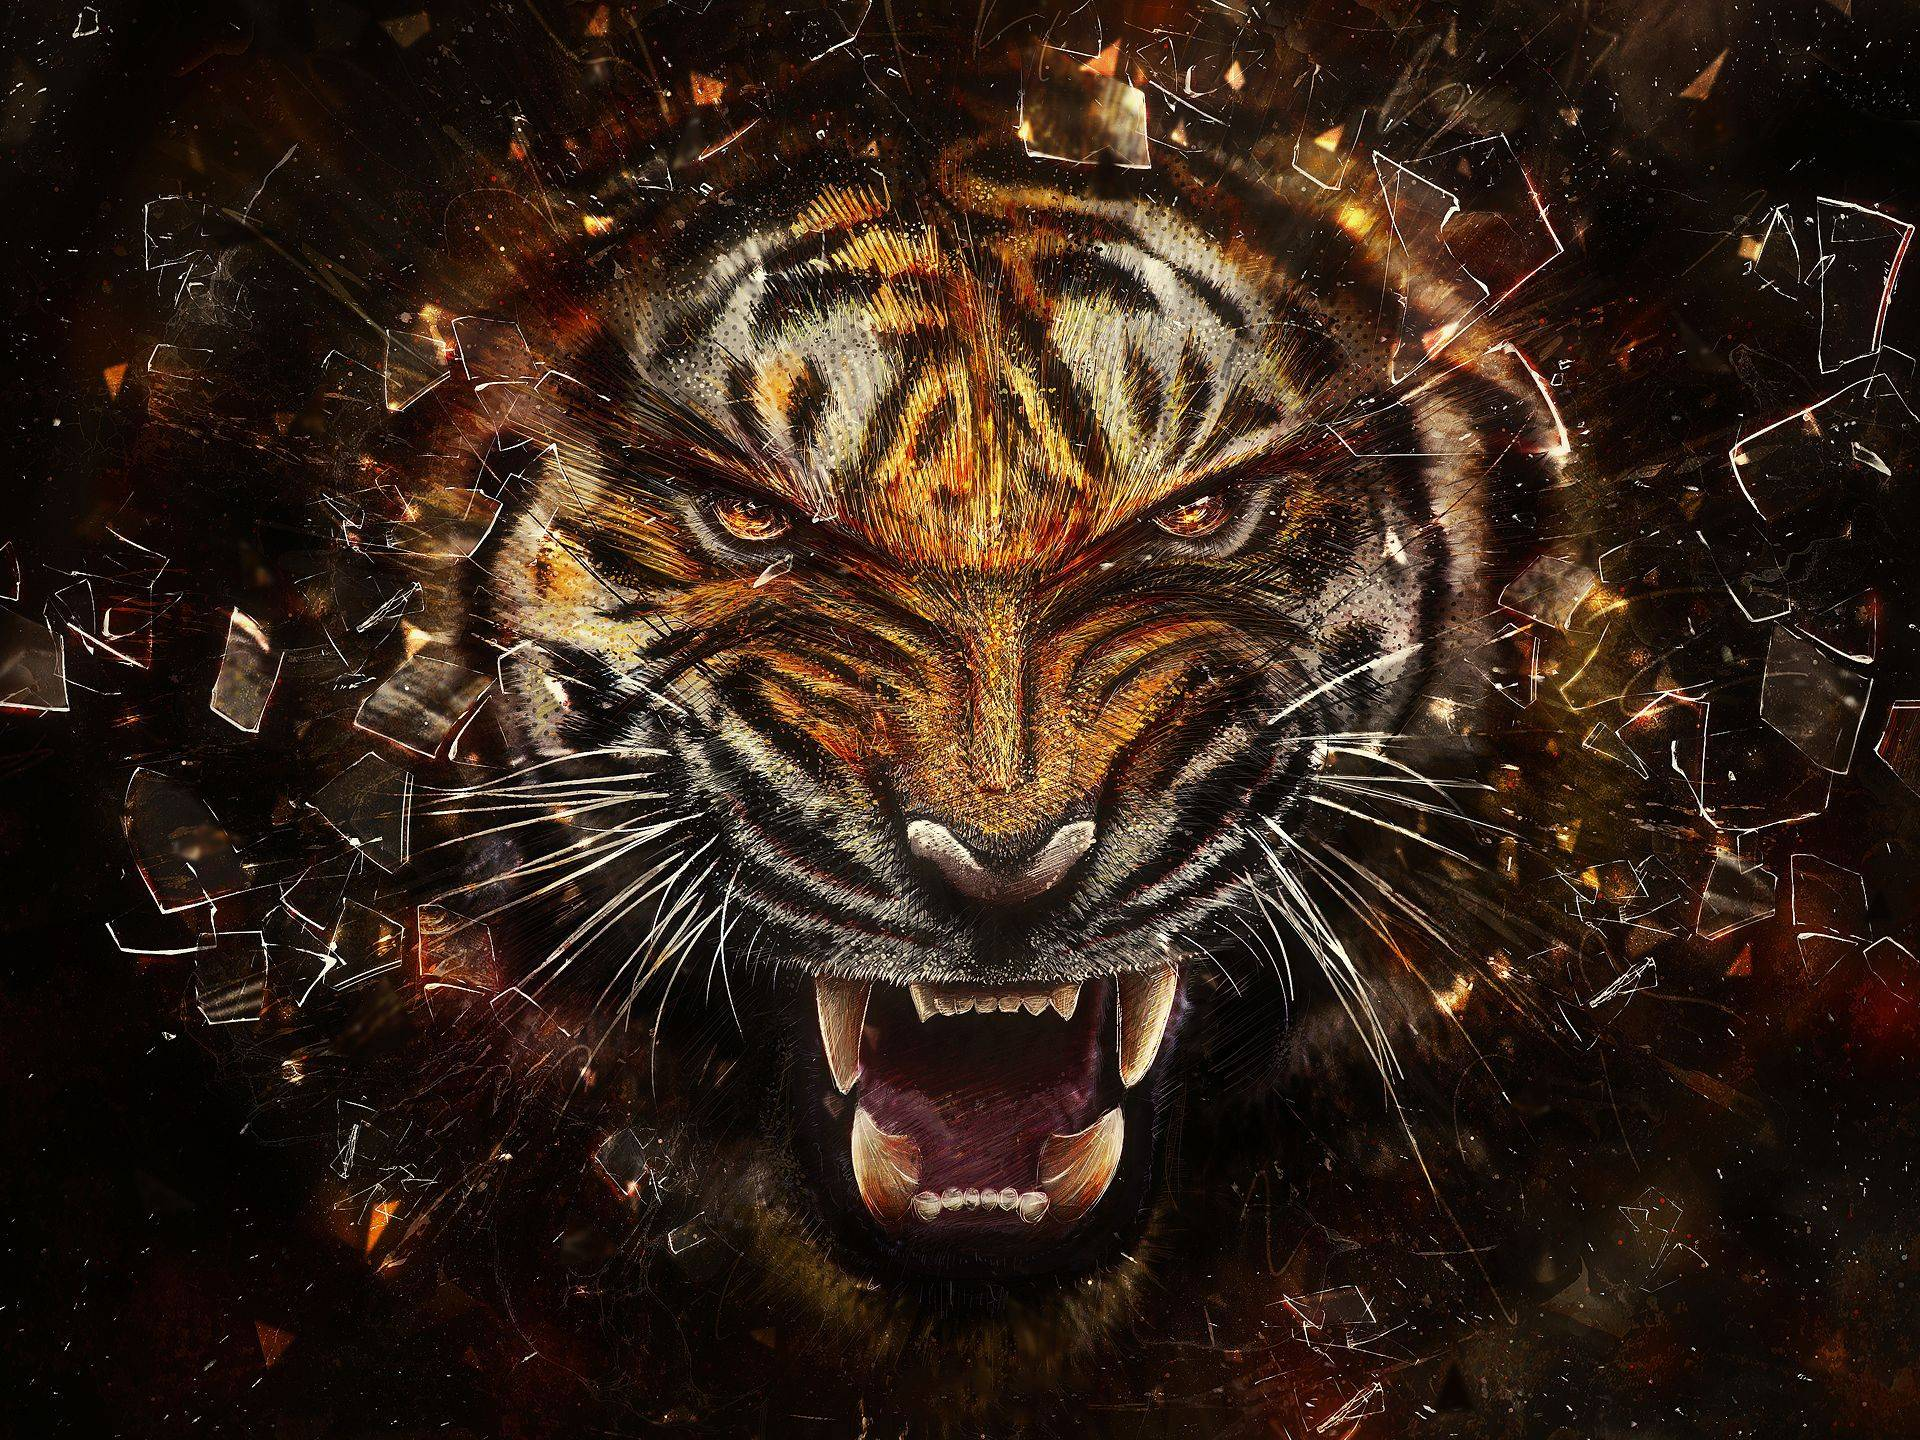 Cool Tiger Backgrounds - Wallpaper Cave